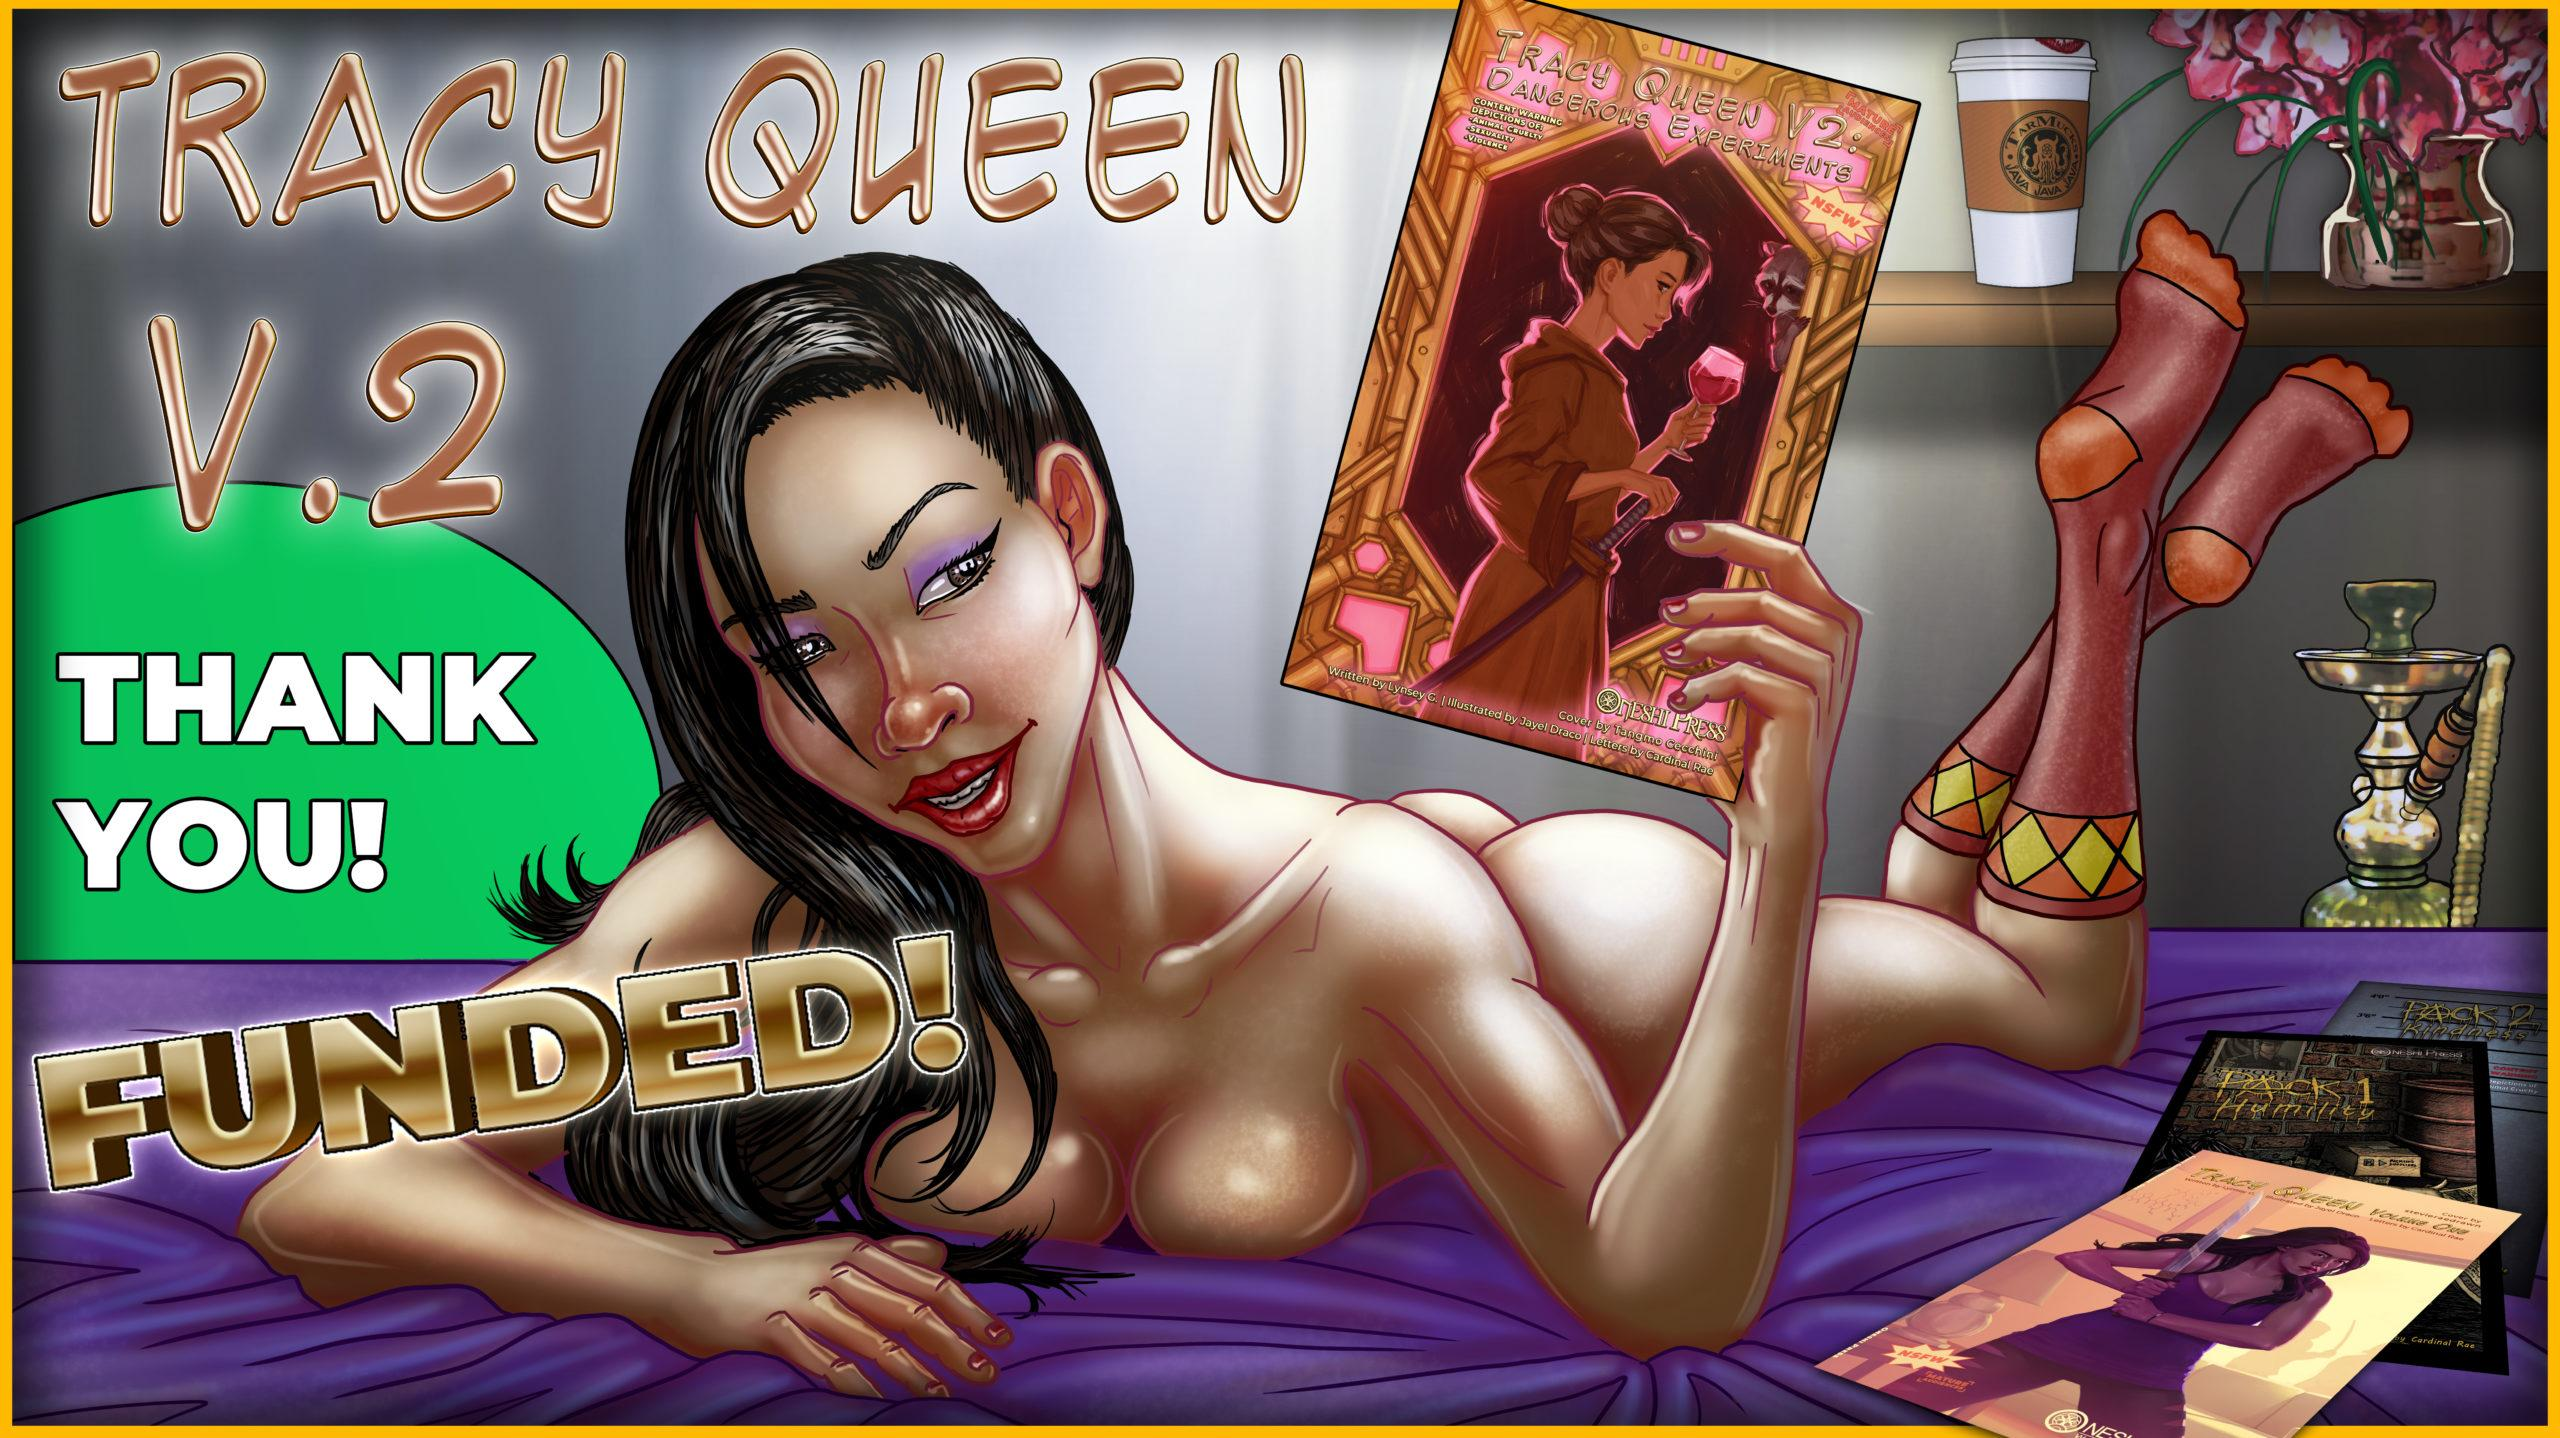 """""""Tracy Queen, Volume 2: Dangerous Experiments"""" successfully funded on kickstarter"""